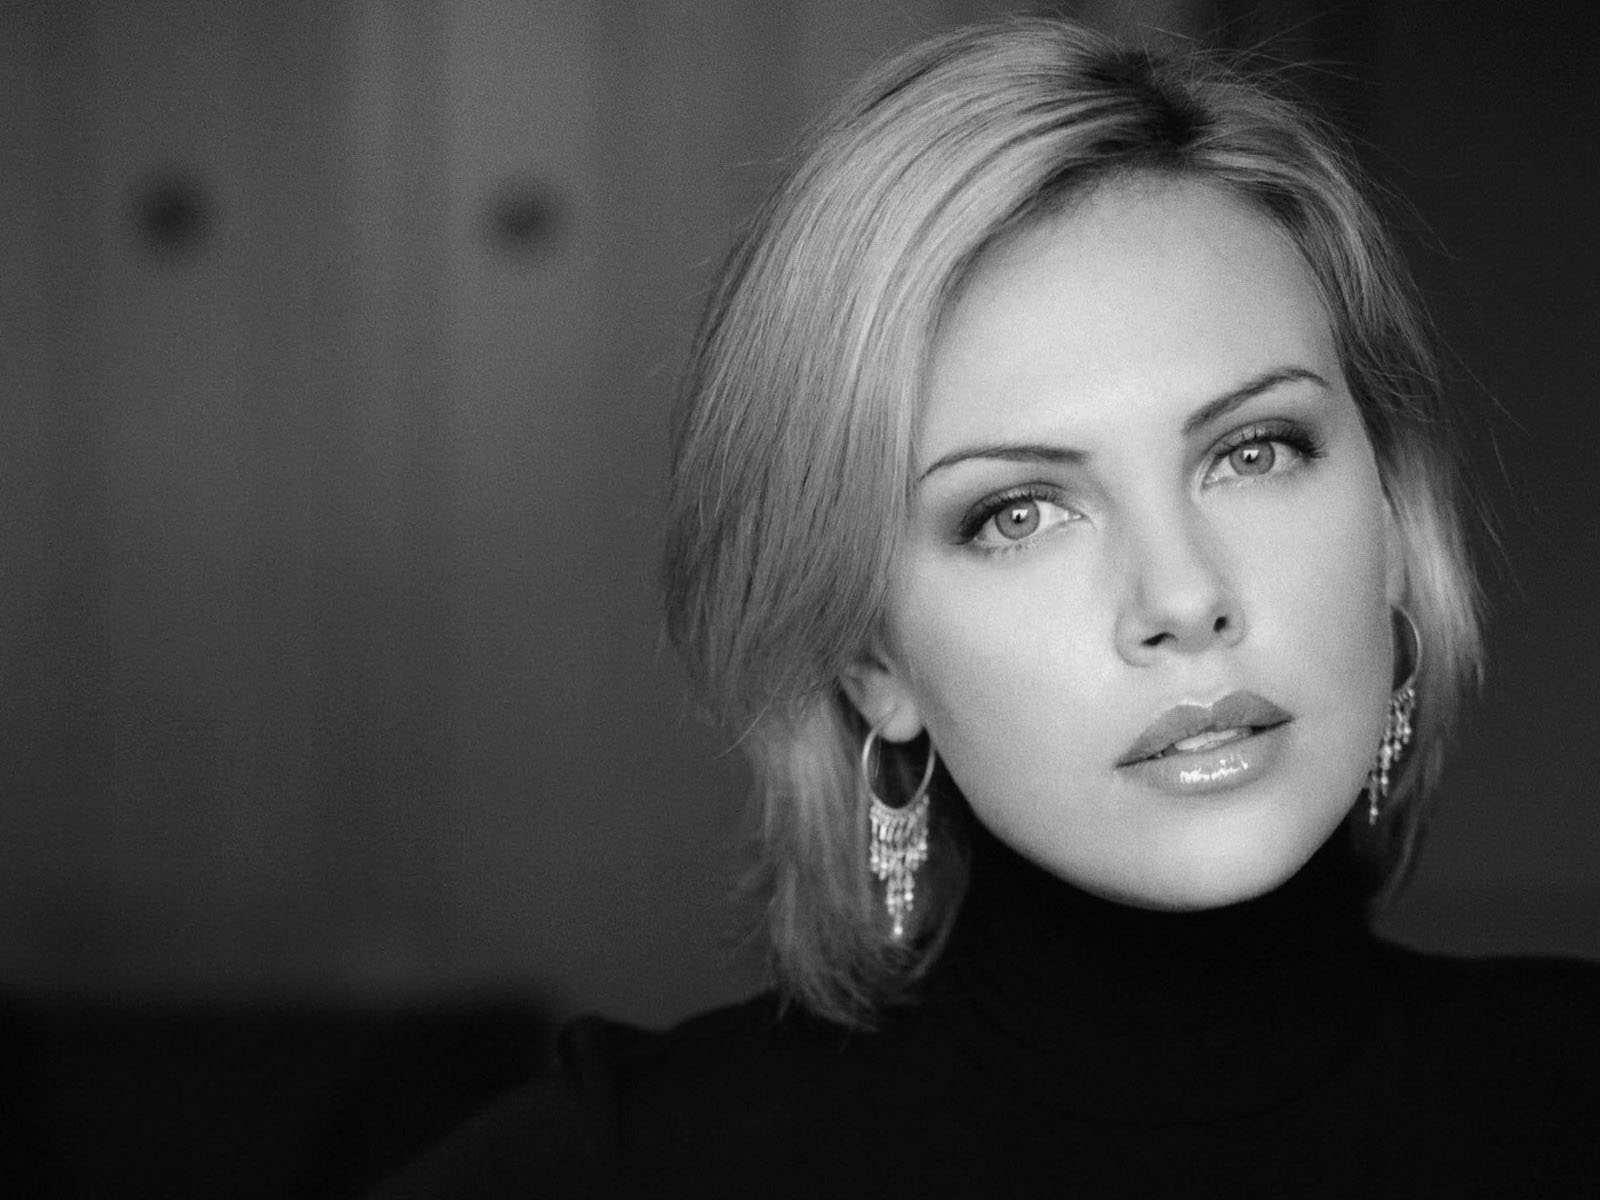 Charlize-Theron-14-705084.jpeg